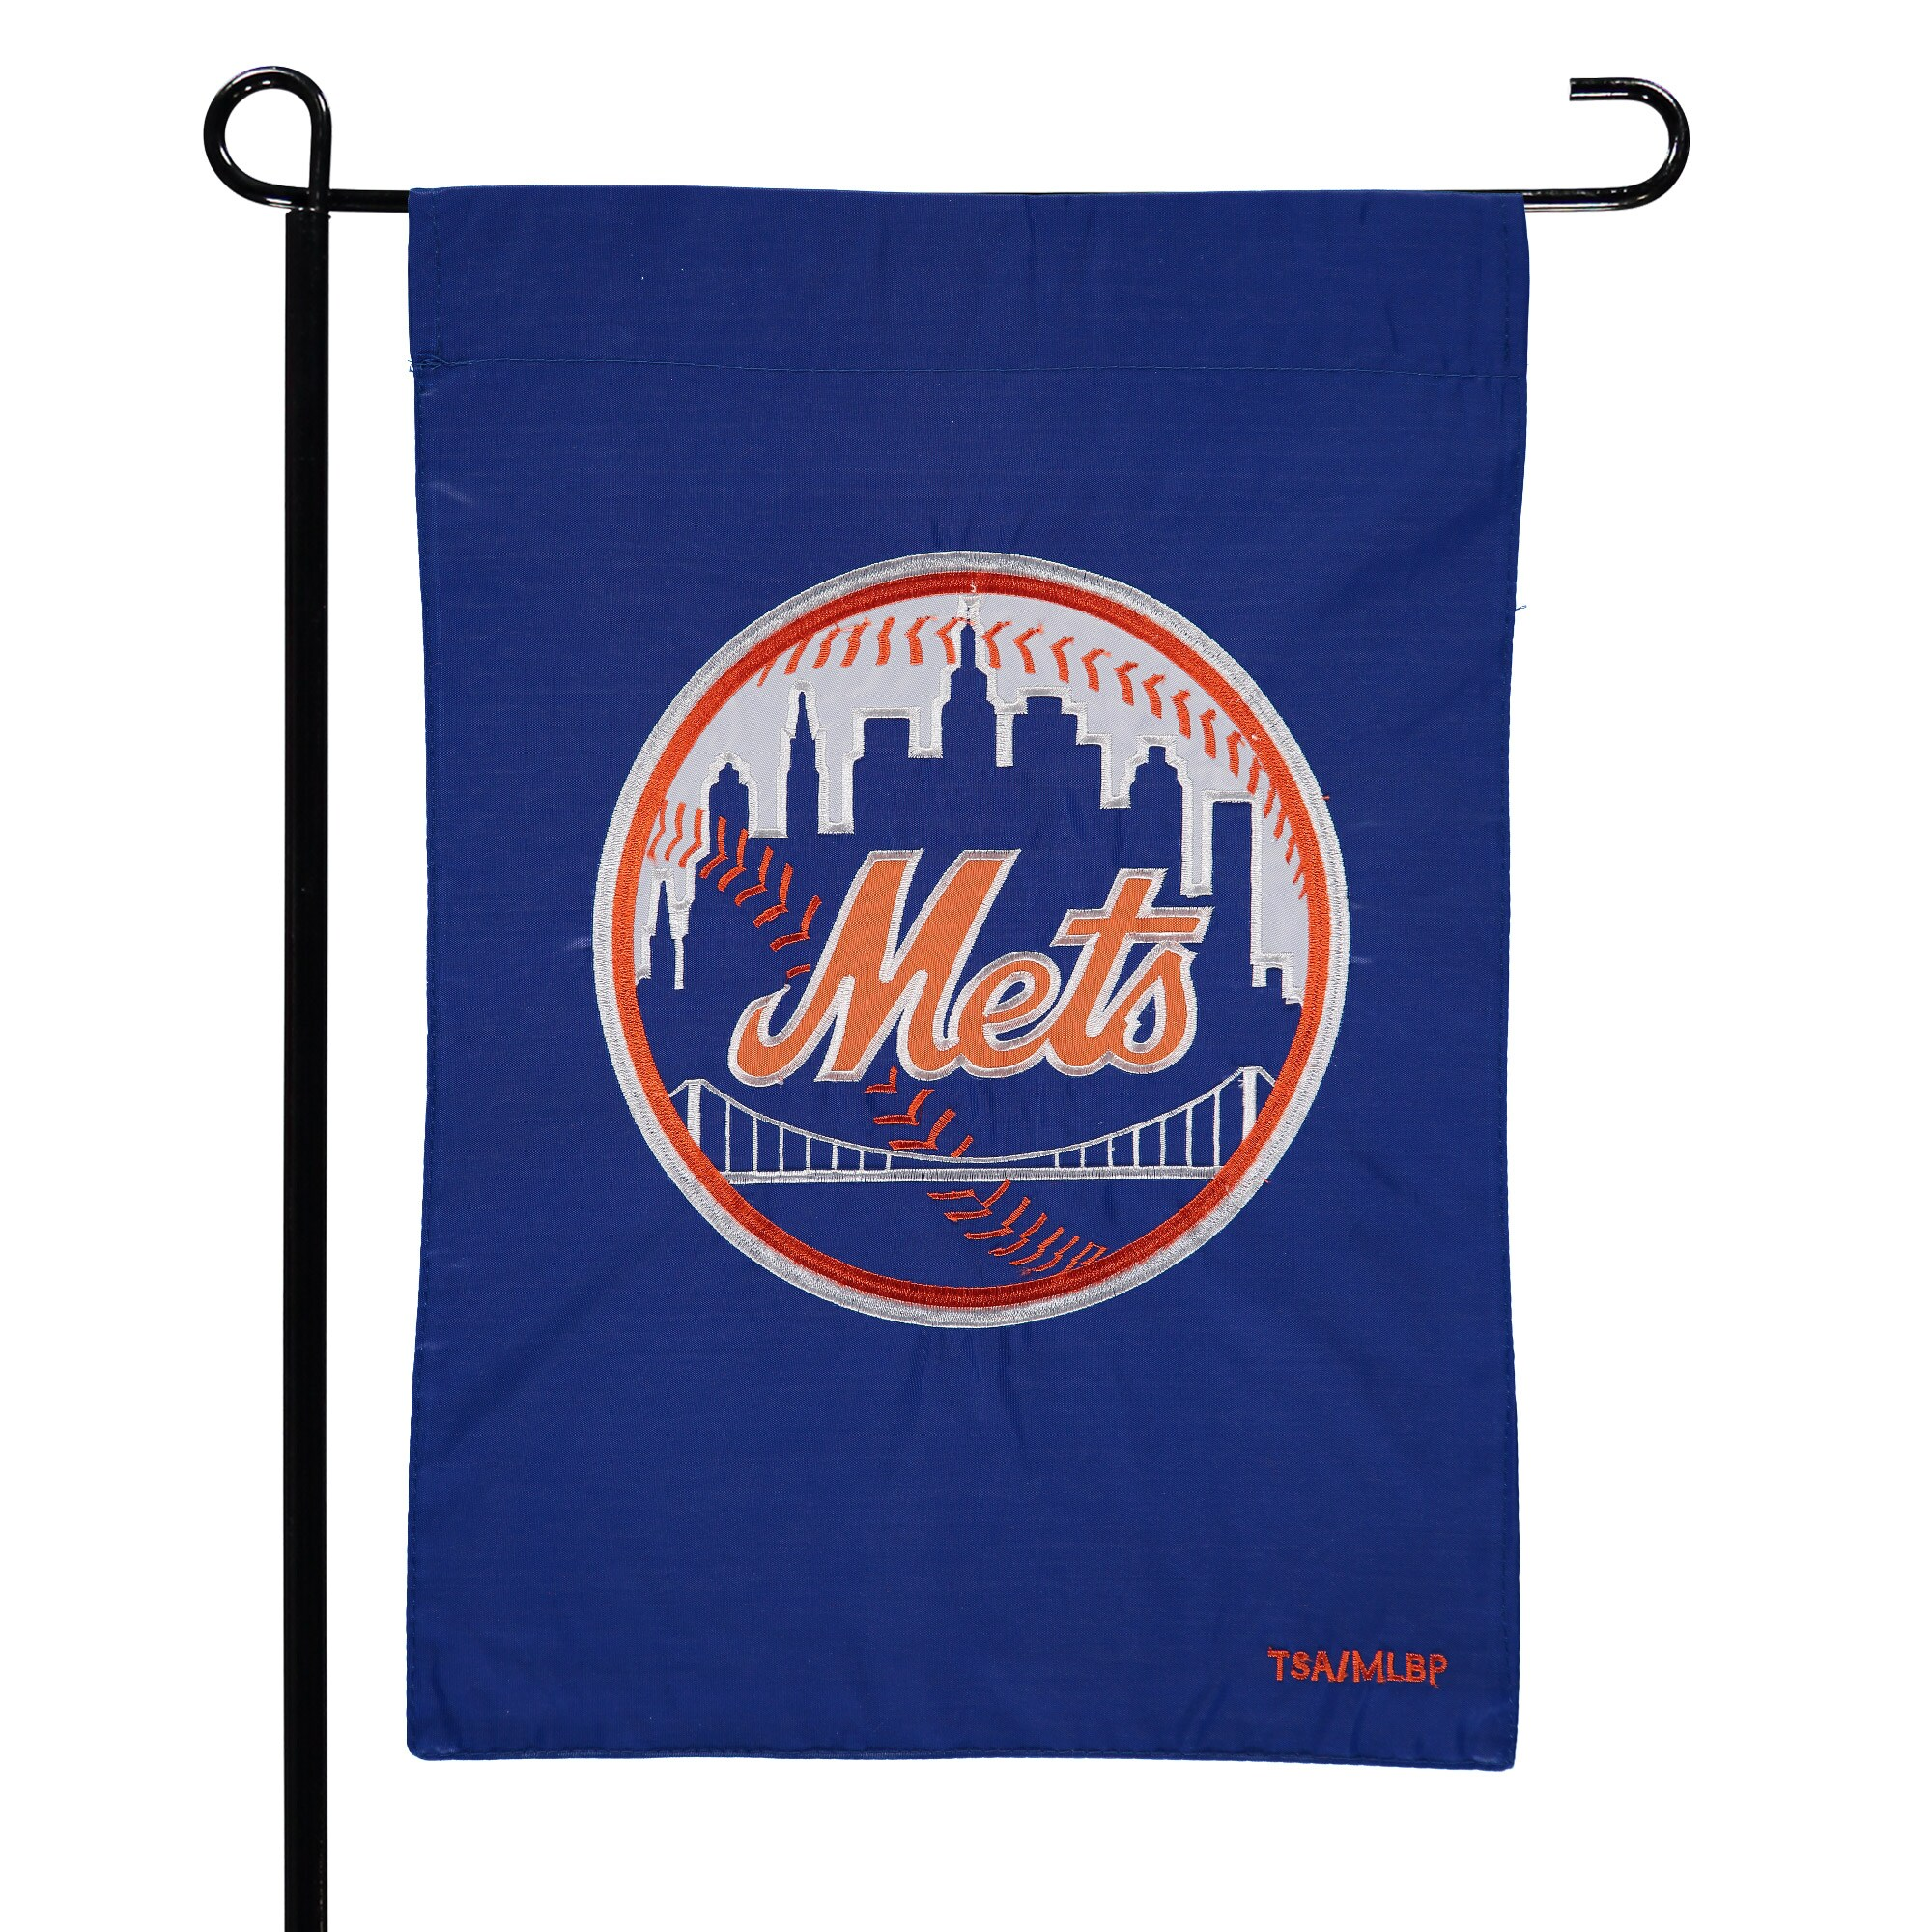 "New York Mets 12.5"" x 19"" Applique Double-Sided Garden Flag"